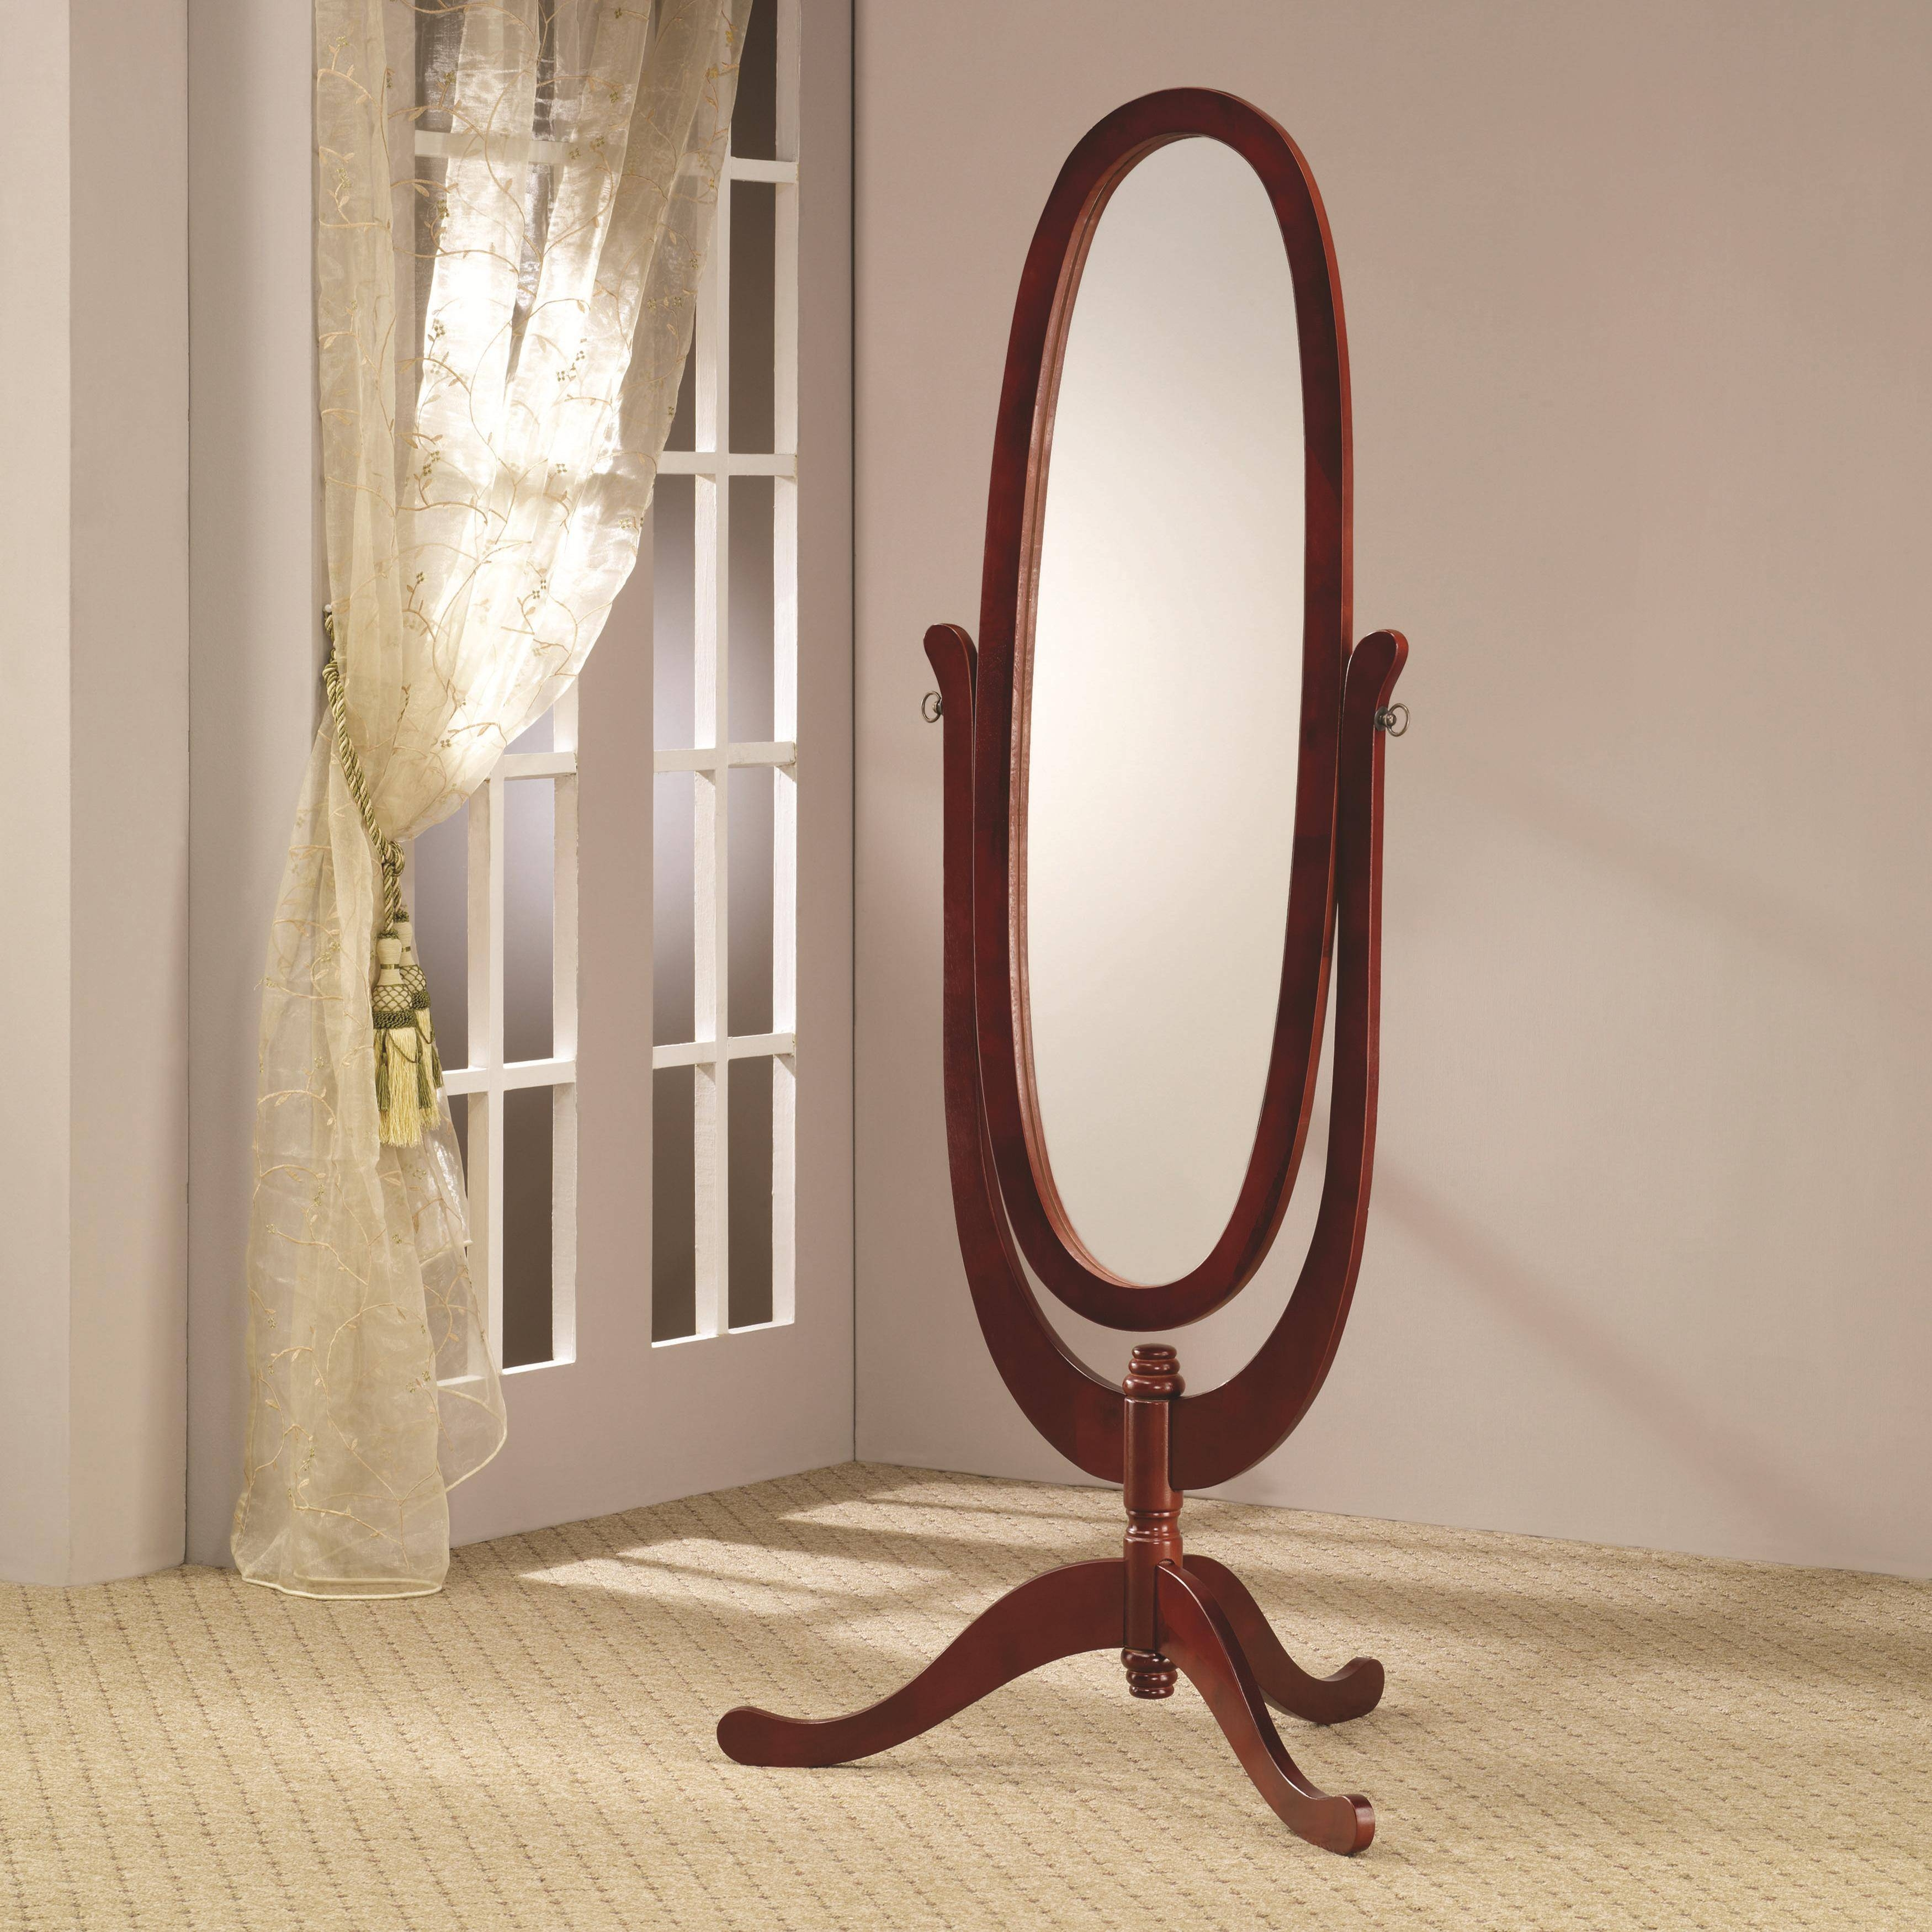 Decorating: Oak Cheval Mirror With 3 Legs For Home Accessories Ideas with Free Standing Oak Mirrors (Image 4 of 15)